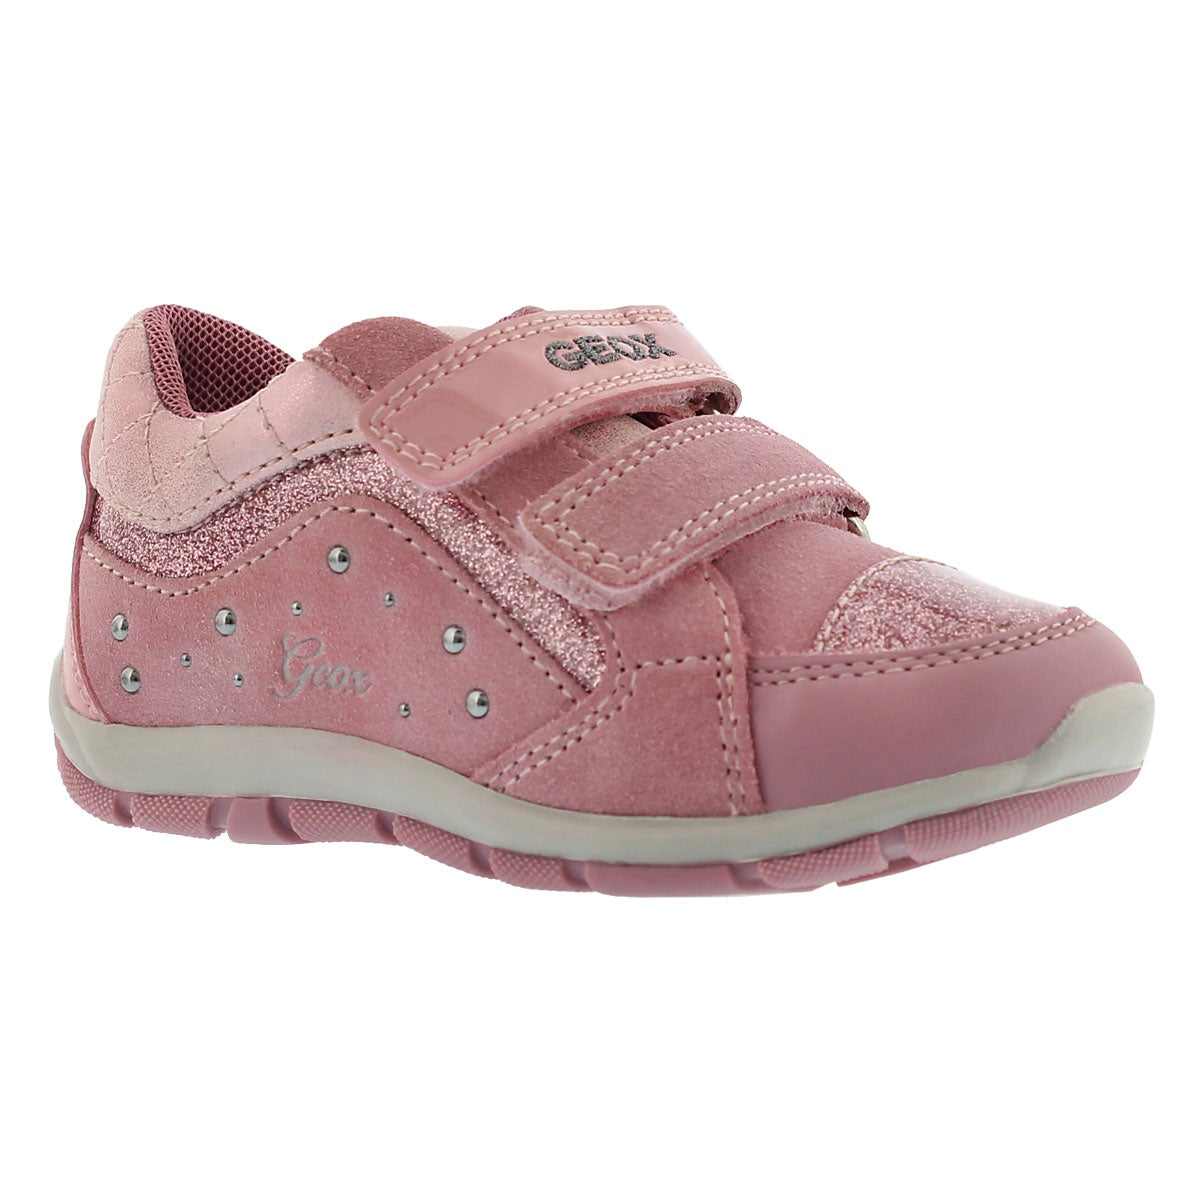 Infants' SHAAX B dark pink 2-strap sneakers